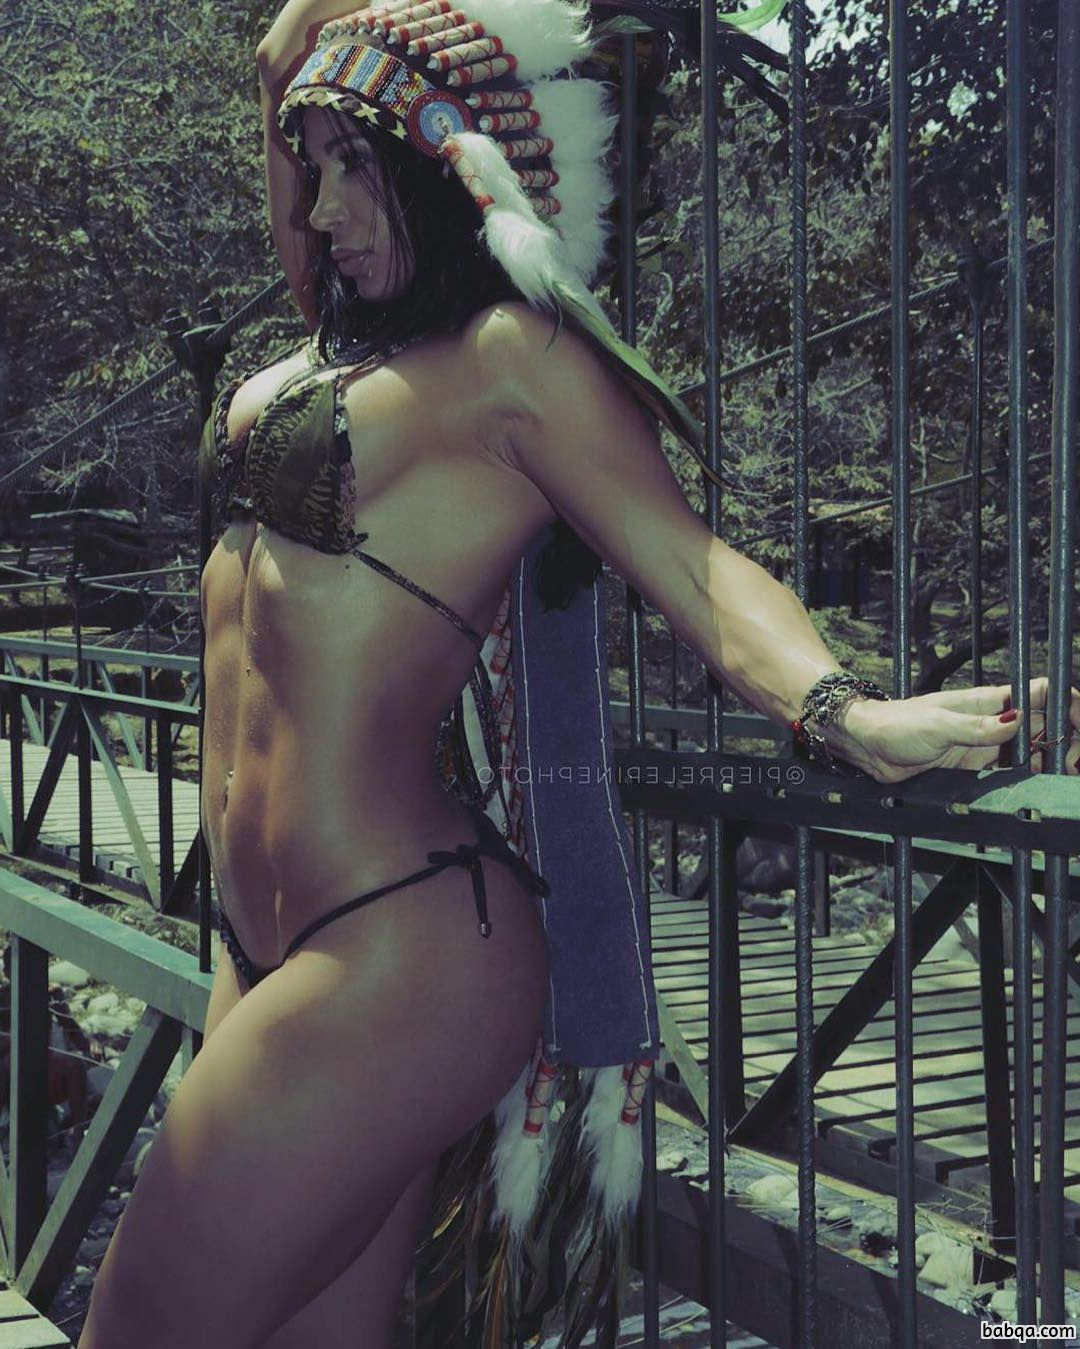 hot female bodybuilder with strong body and toned arms picture from g+